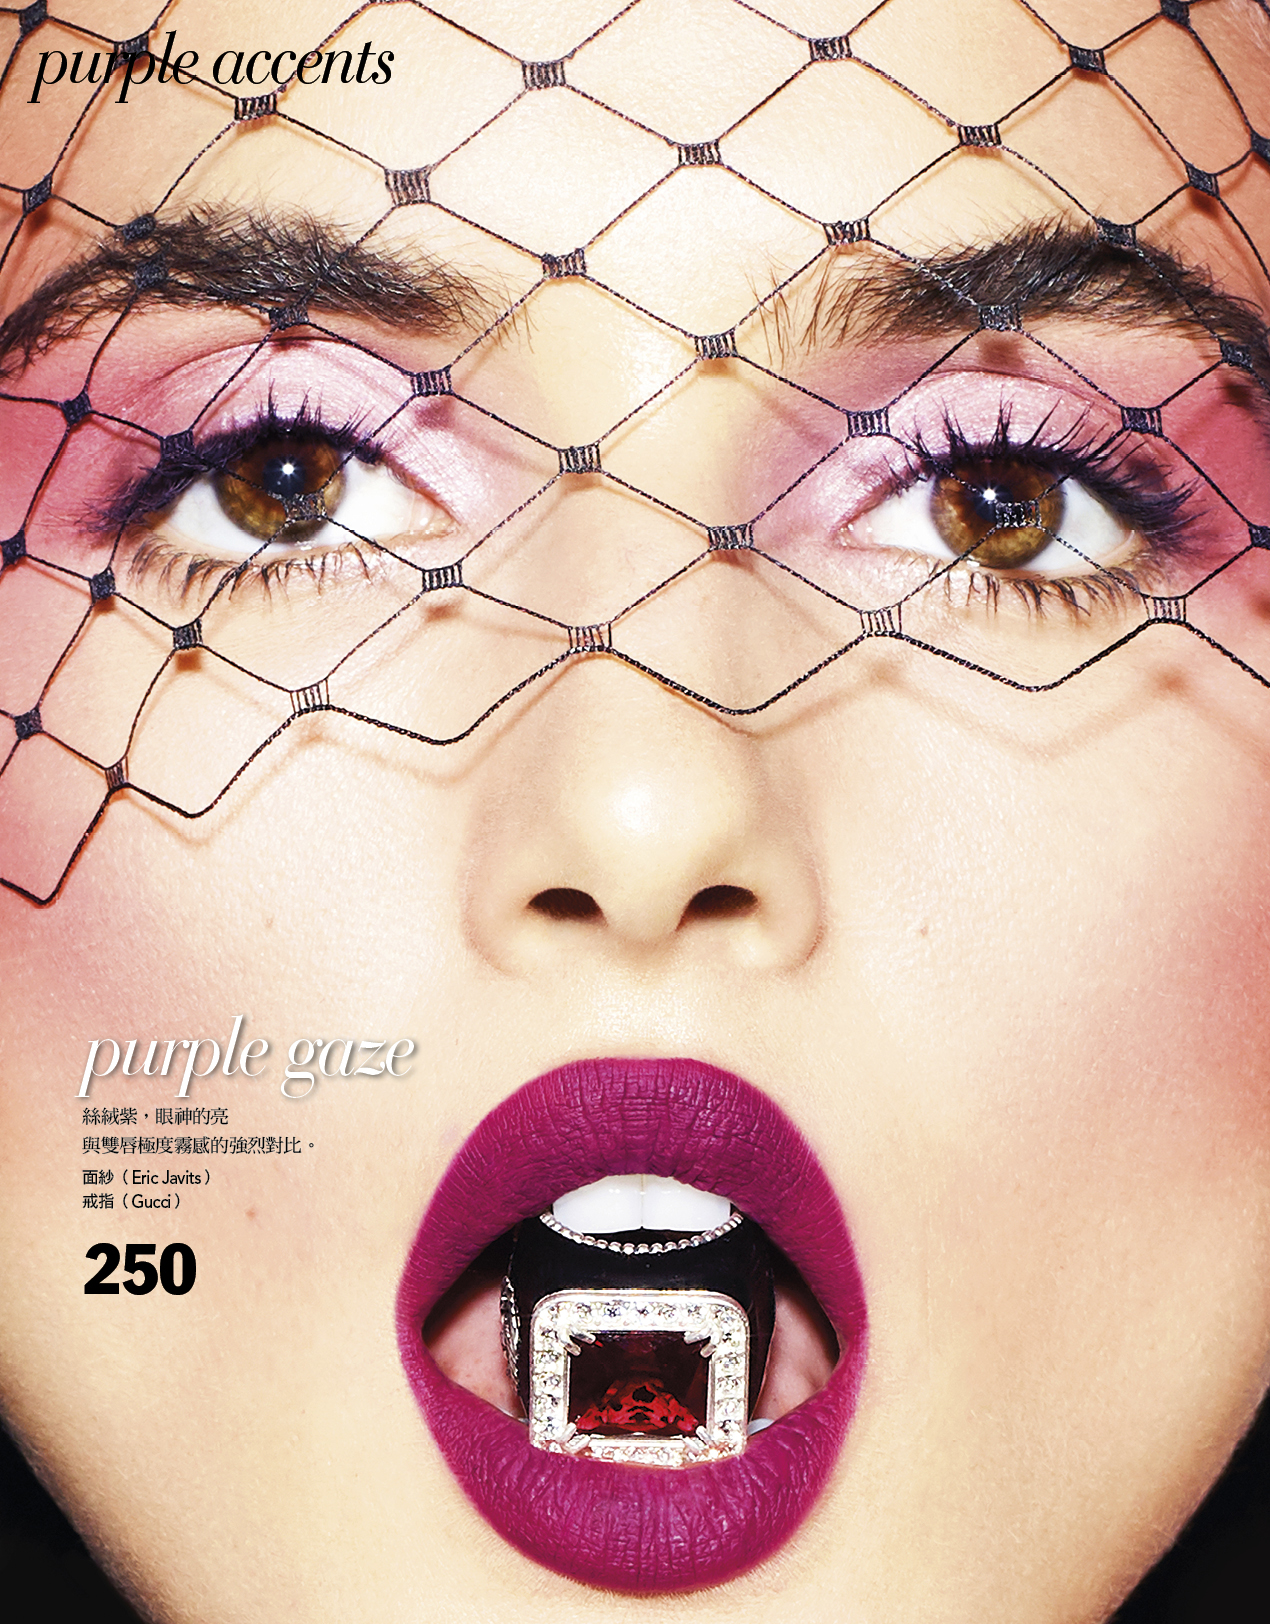 Blanca Padilla for VOGUE Taiwan by Enrique Vega [Layout]4.jpg